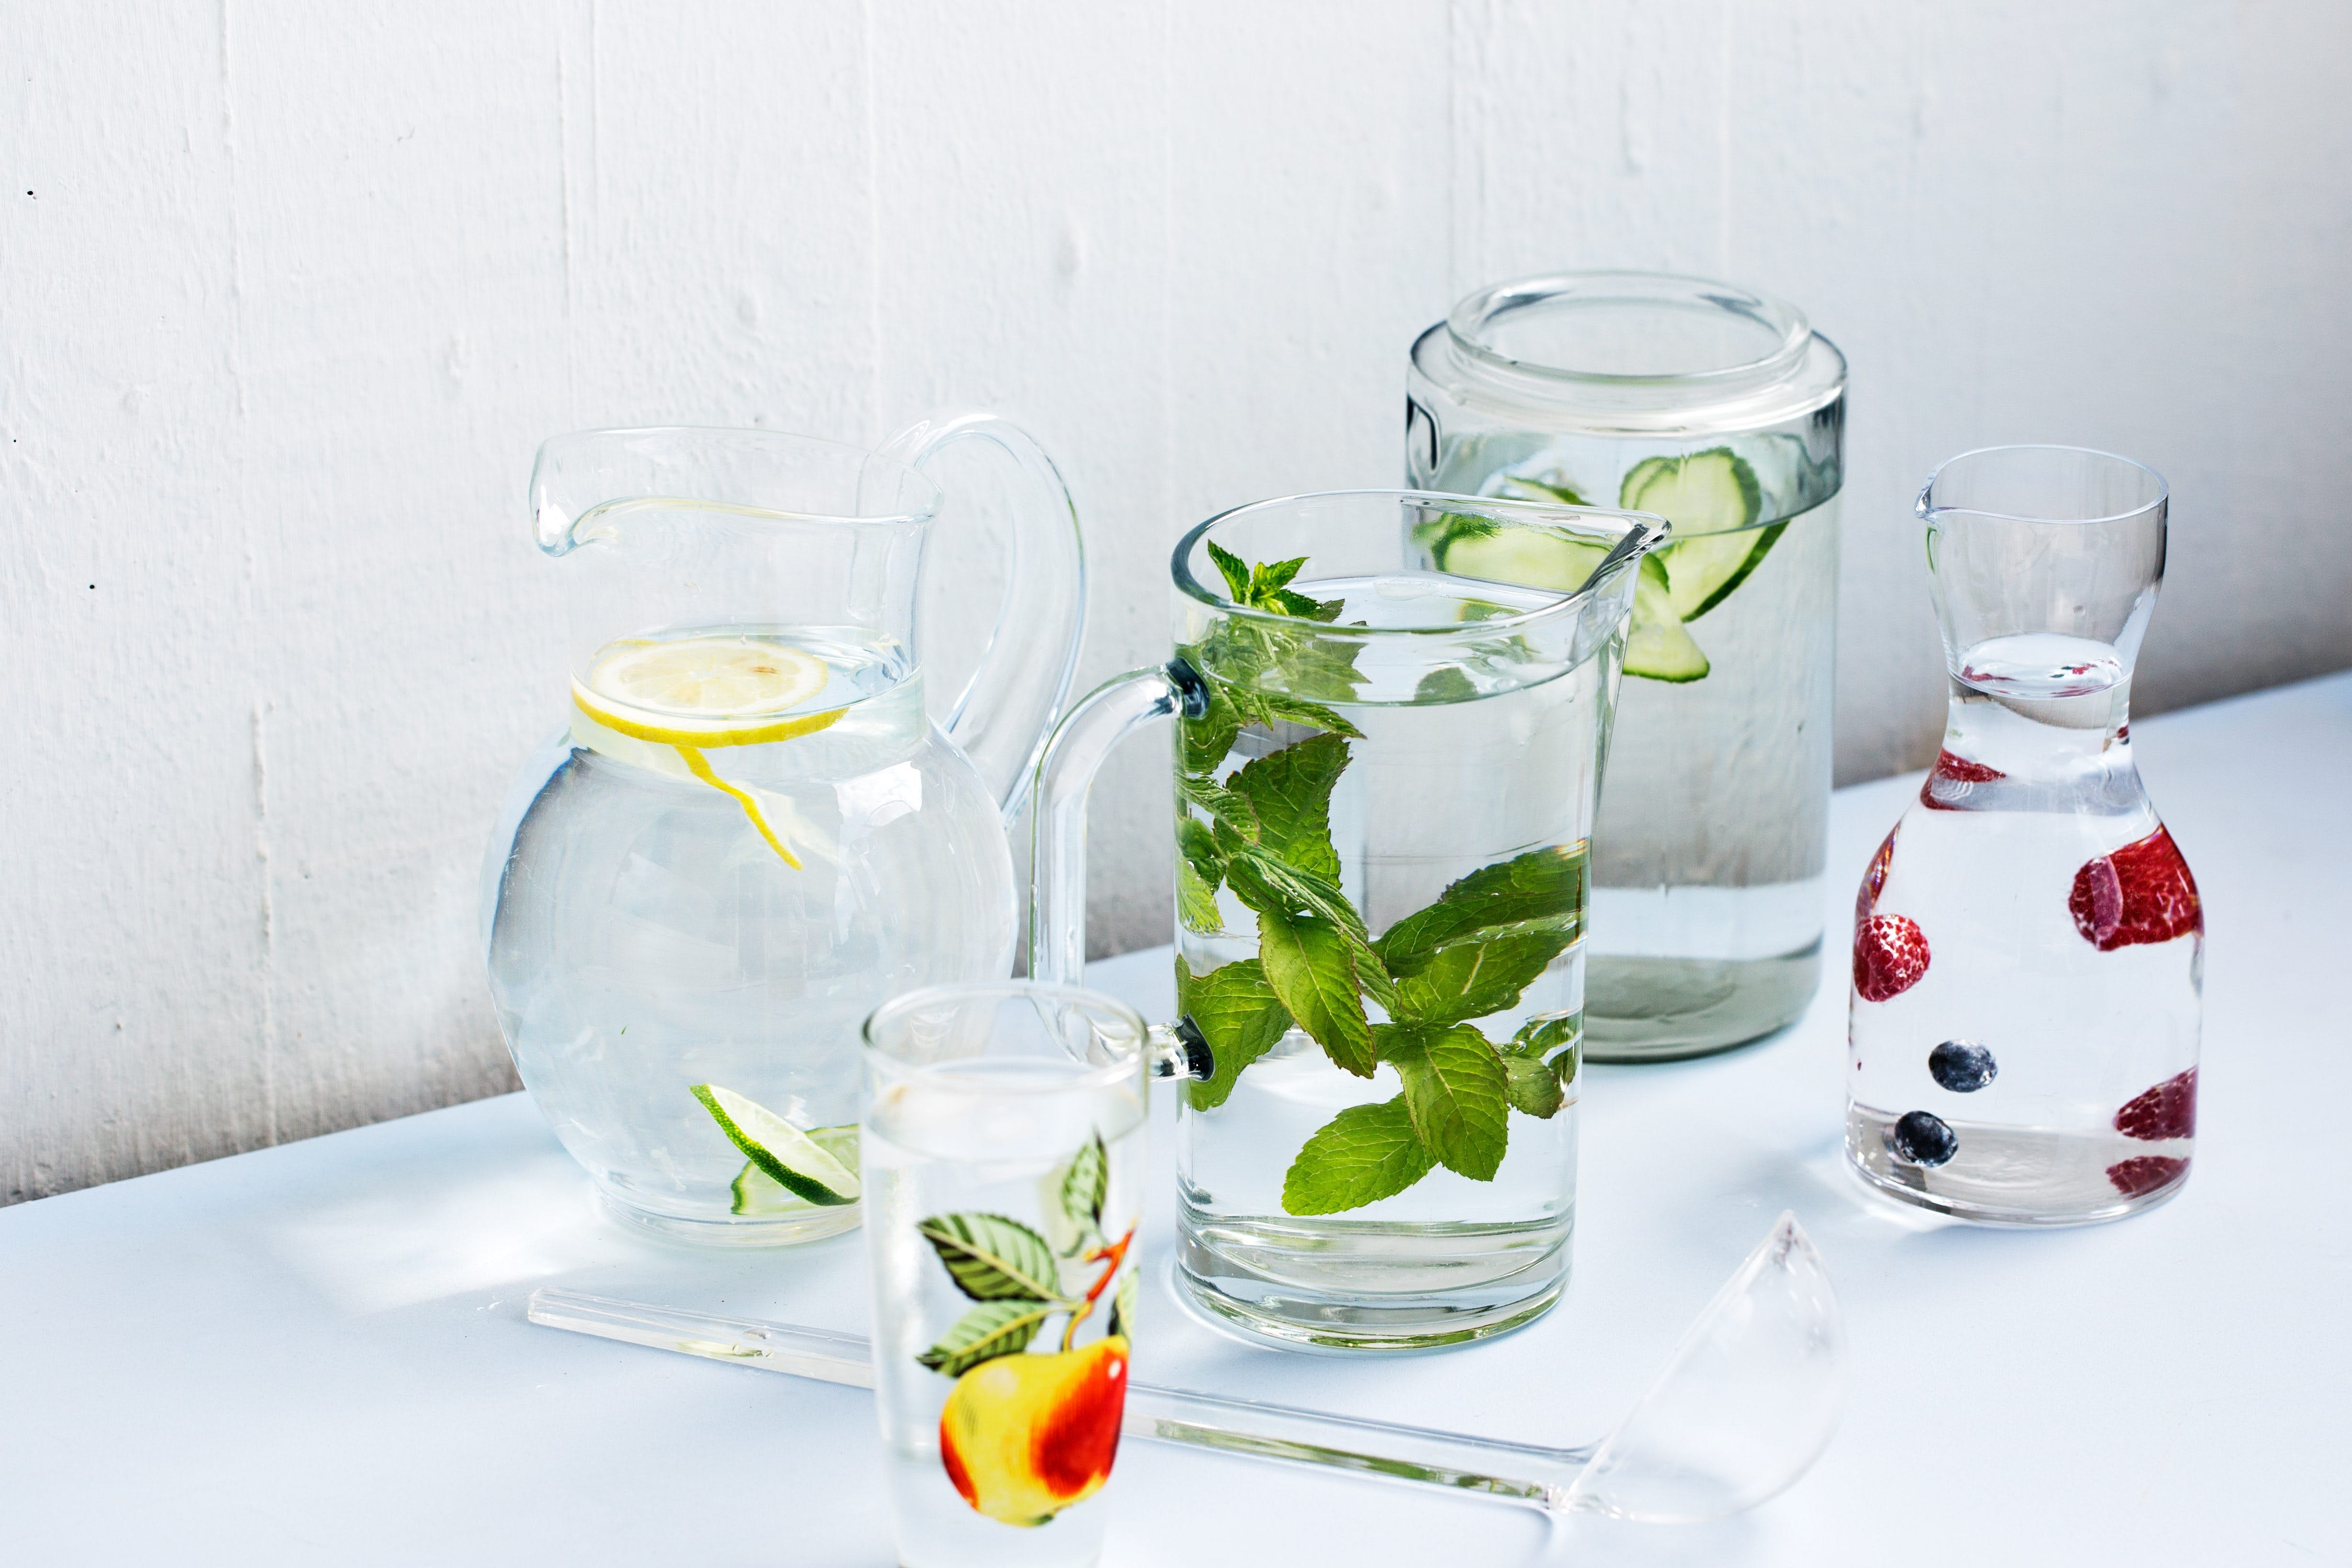 Flavored Water with Fruits, Berries and Herbs